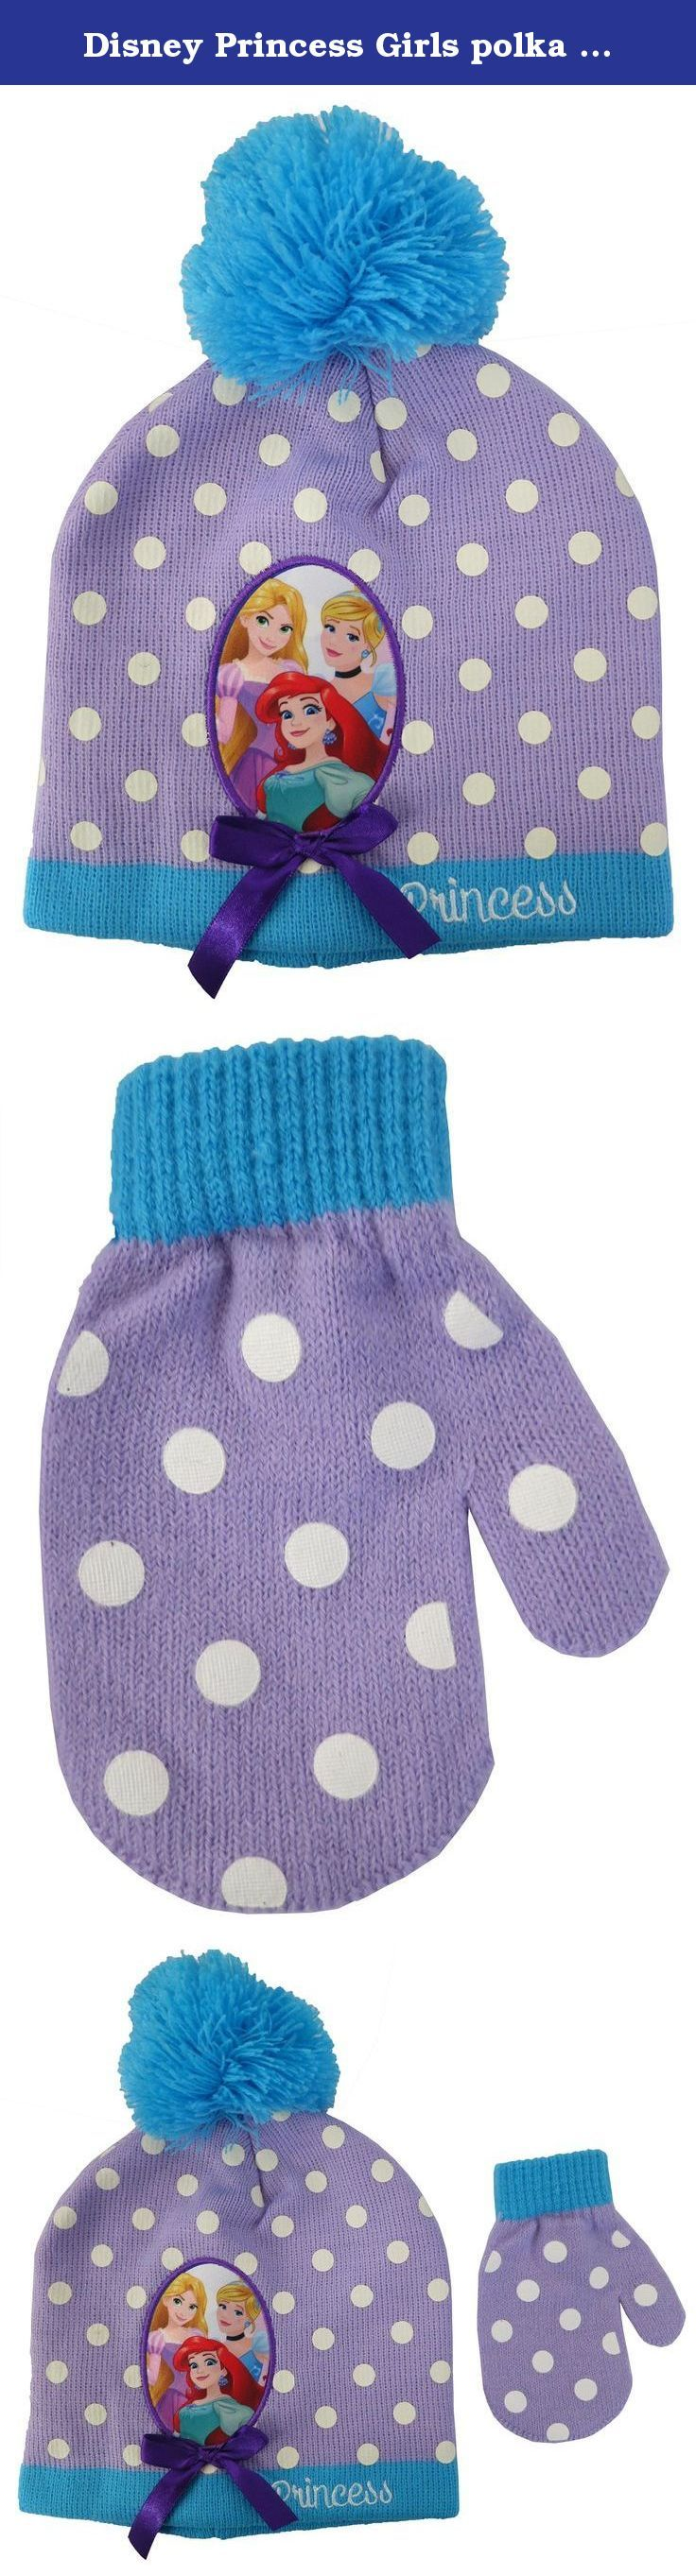 Disney Princess Girls polka dot Beanie Hat and Mitten Set - Toddler [4013]. Bring your favorite characters, Disney Princess Girls polka dot Beanie Hat and Mitten Set, With you to keep you comfortable and looking great in the cold! Hat Featuring: Favorite Characters Ariel Cinderella and Aurora turquoise Pompom, White Polka Dot, Turquoise edging, Purple Mitten: White Polka Dot, Turquoise edging One Size Fits Most Toddler Officially Disney Licensed Product Girls Lovely design with friendly...